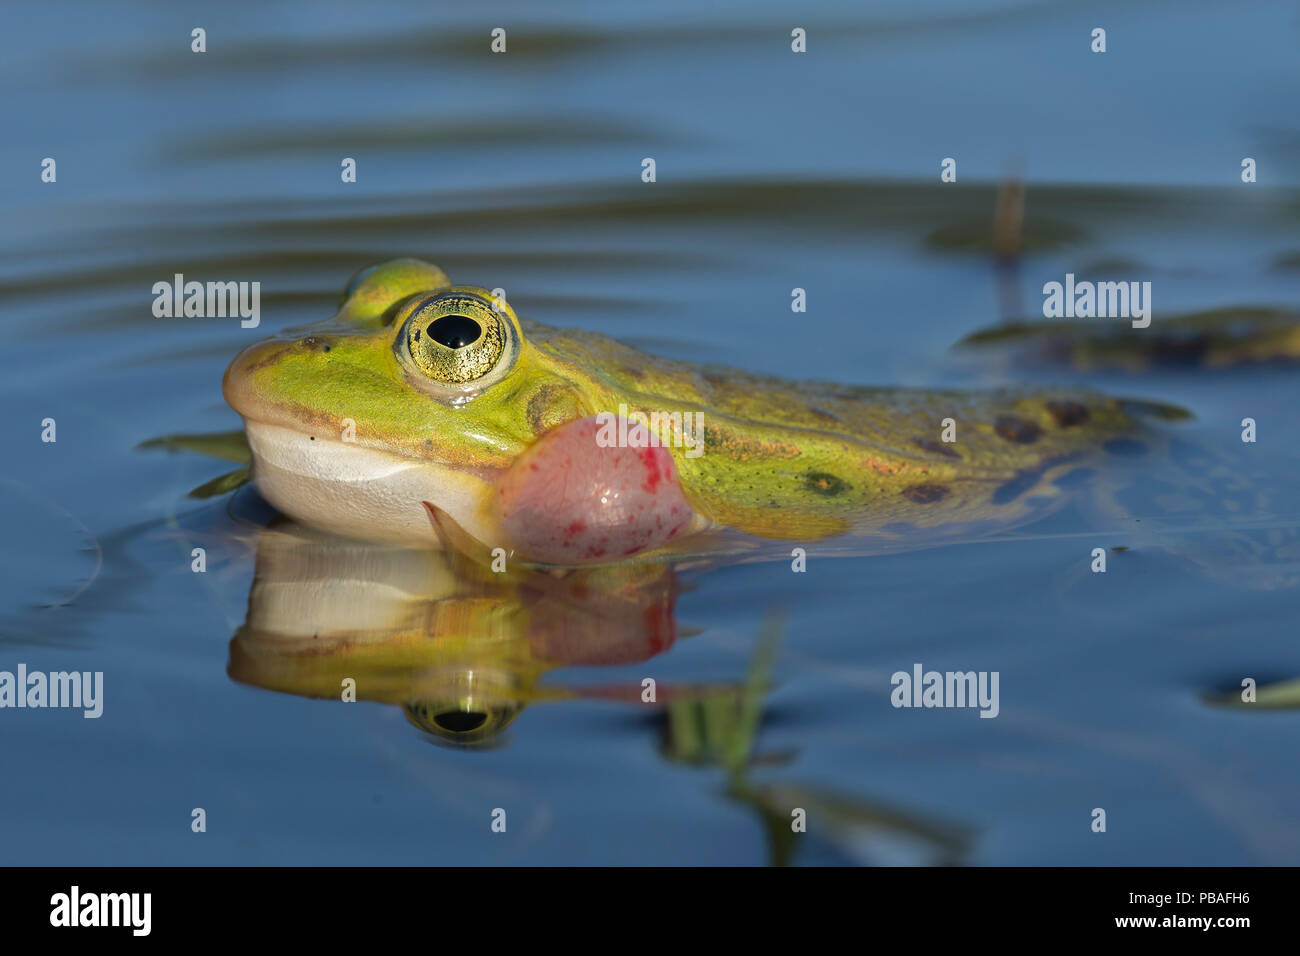 Edible frog (Rana esculenta) male calling at pond surface, Klein Schietveld, Brasschaat, Belgium May - Stock Image